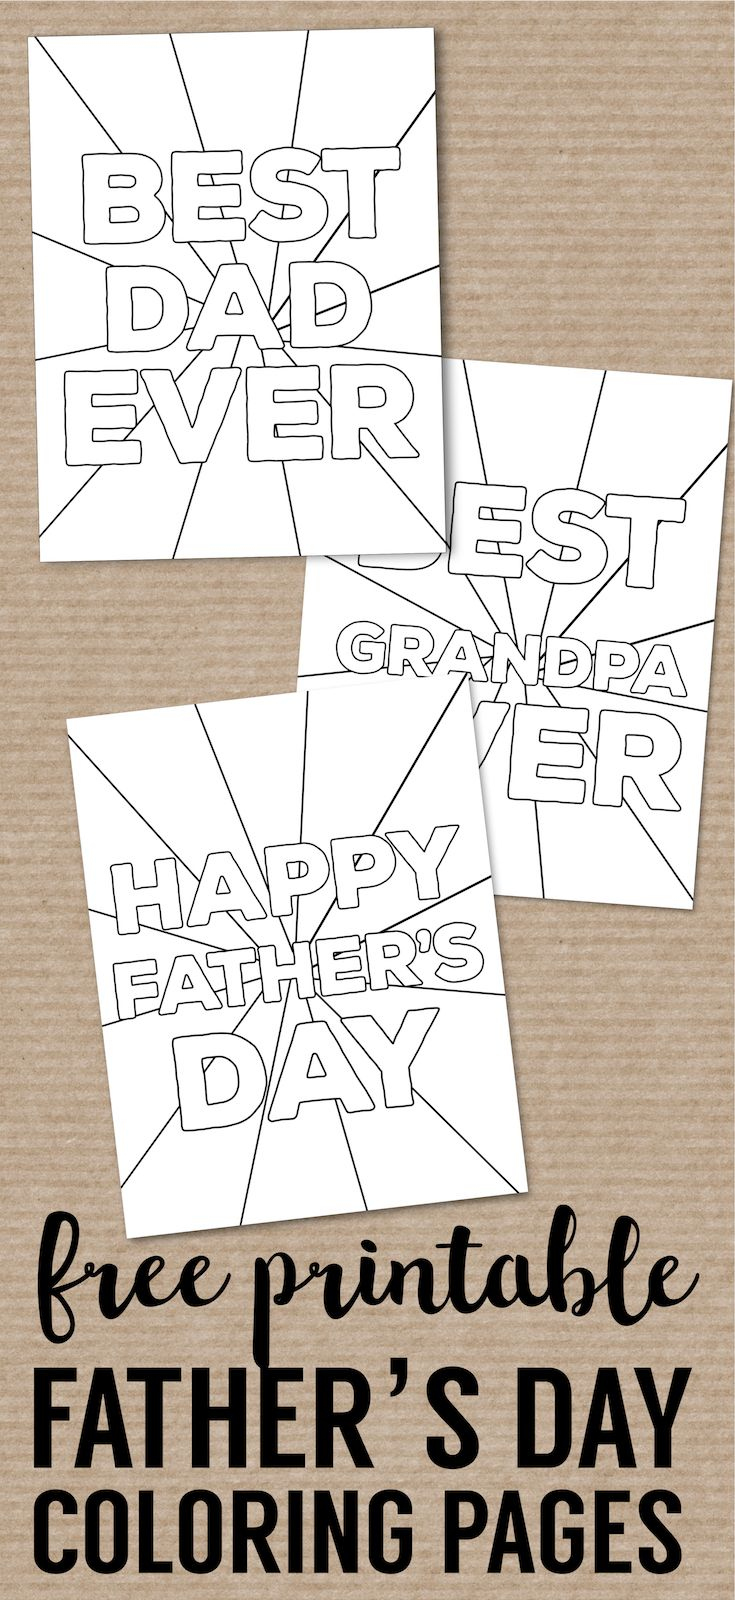 Happy Father S Day Coloring Pages Free Printables Paper Trail Design Fathers Day Coloring Page Father S Day Diy Fathers Day Crafts